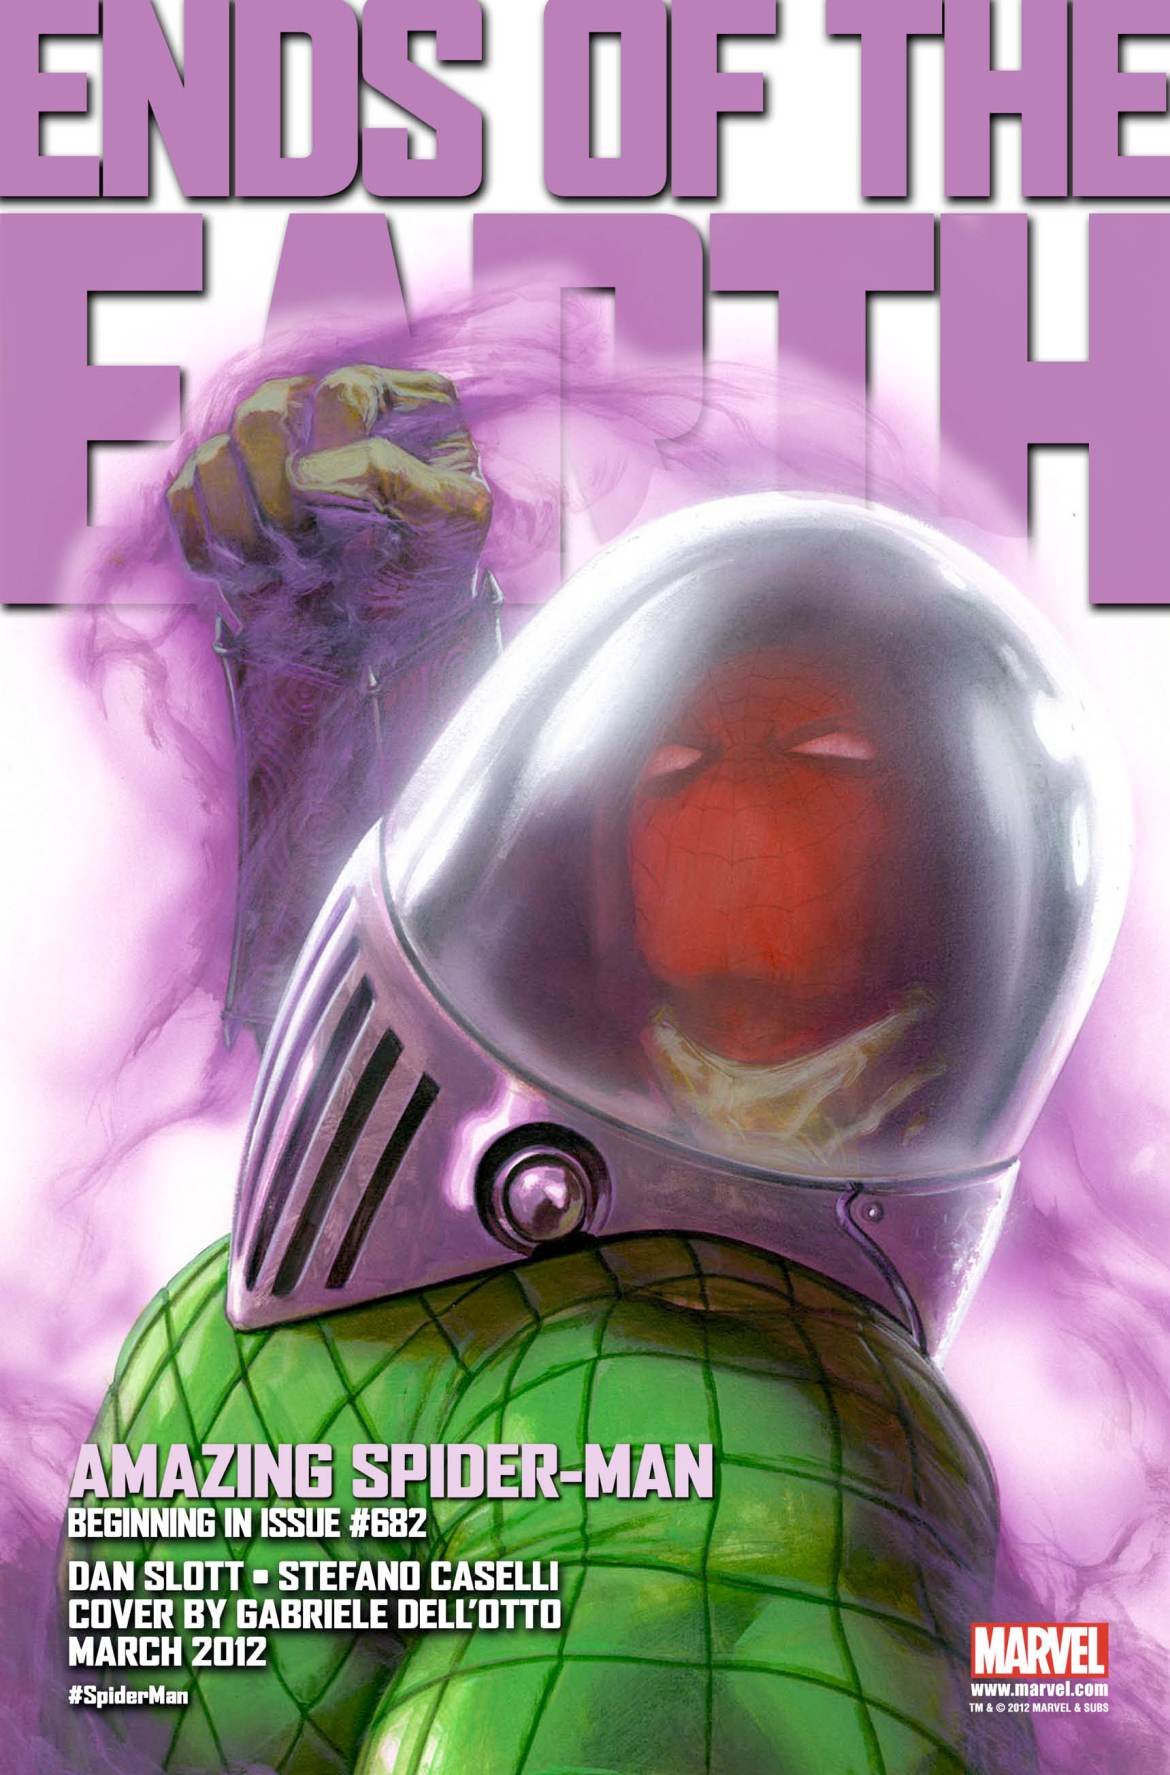 AmazingSpiderMan_EndsOfTheEarth_Teaser3 Mysterio takes Spider-Man to THE ENDS OF THE EARTH